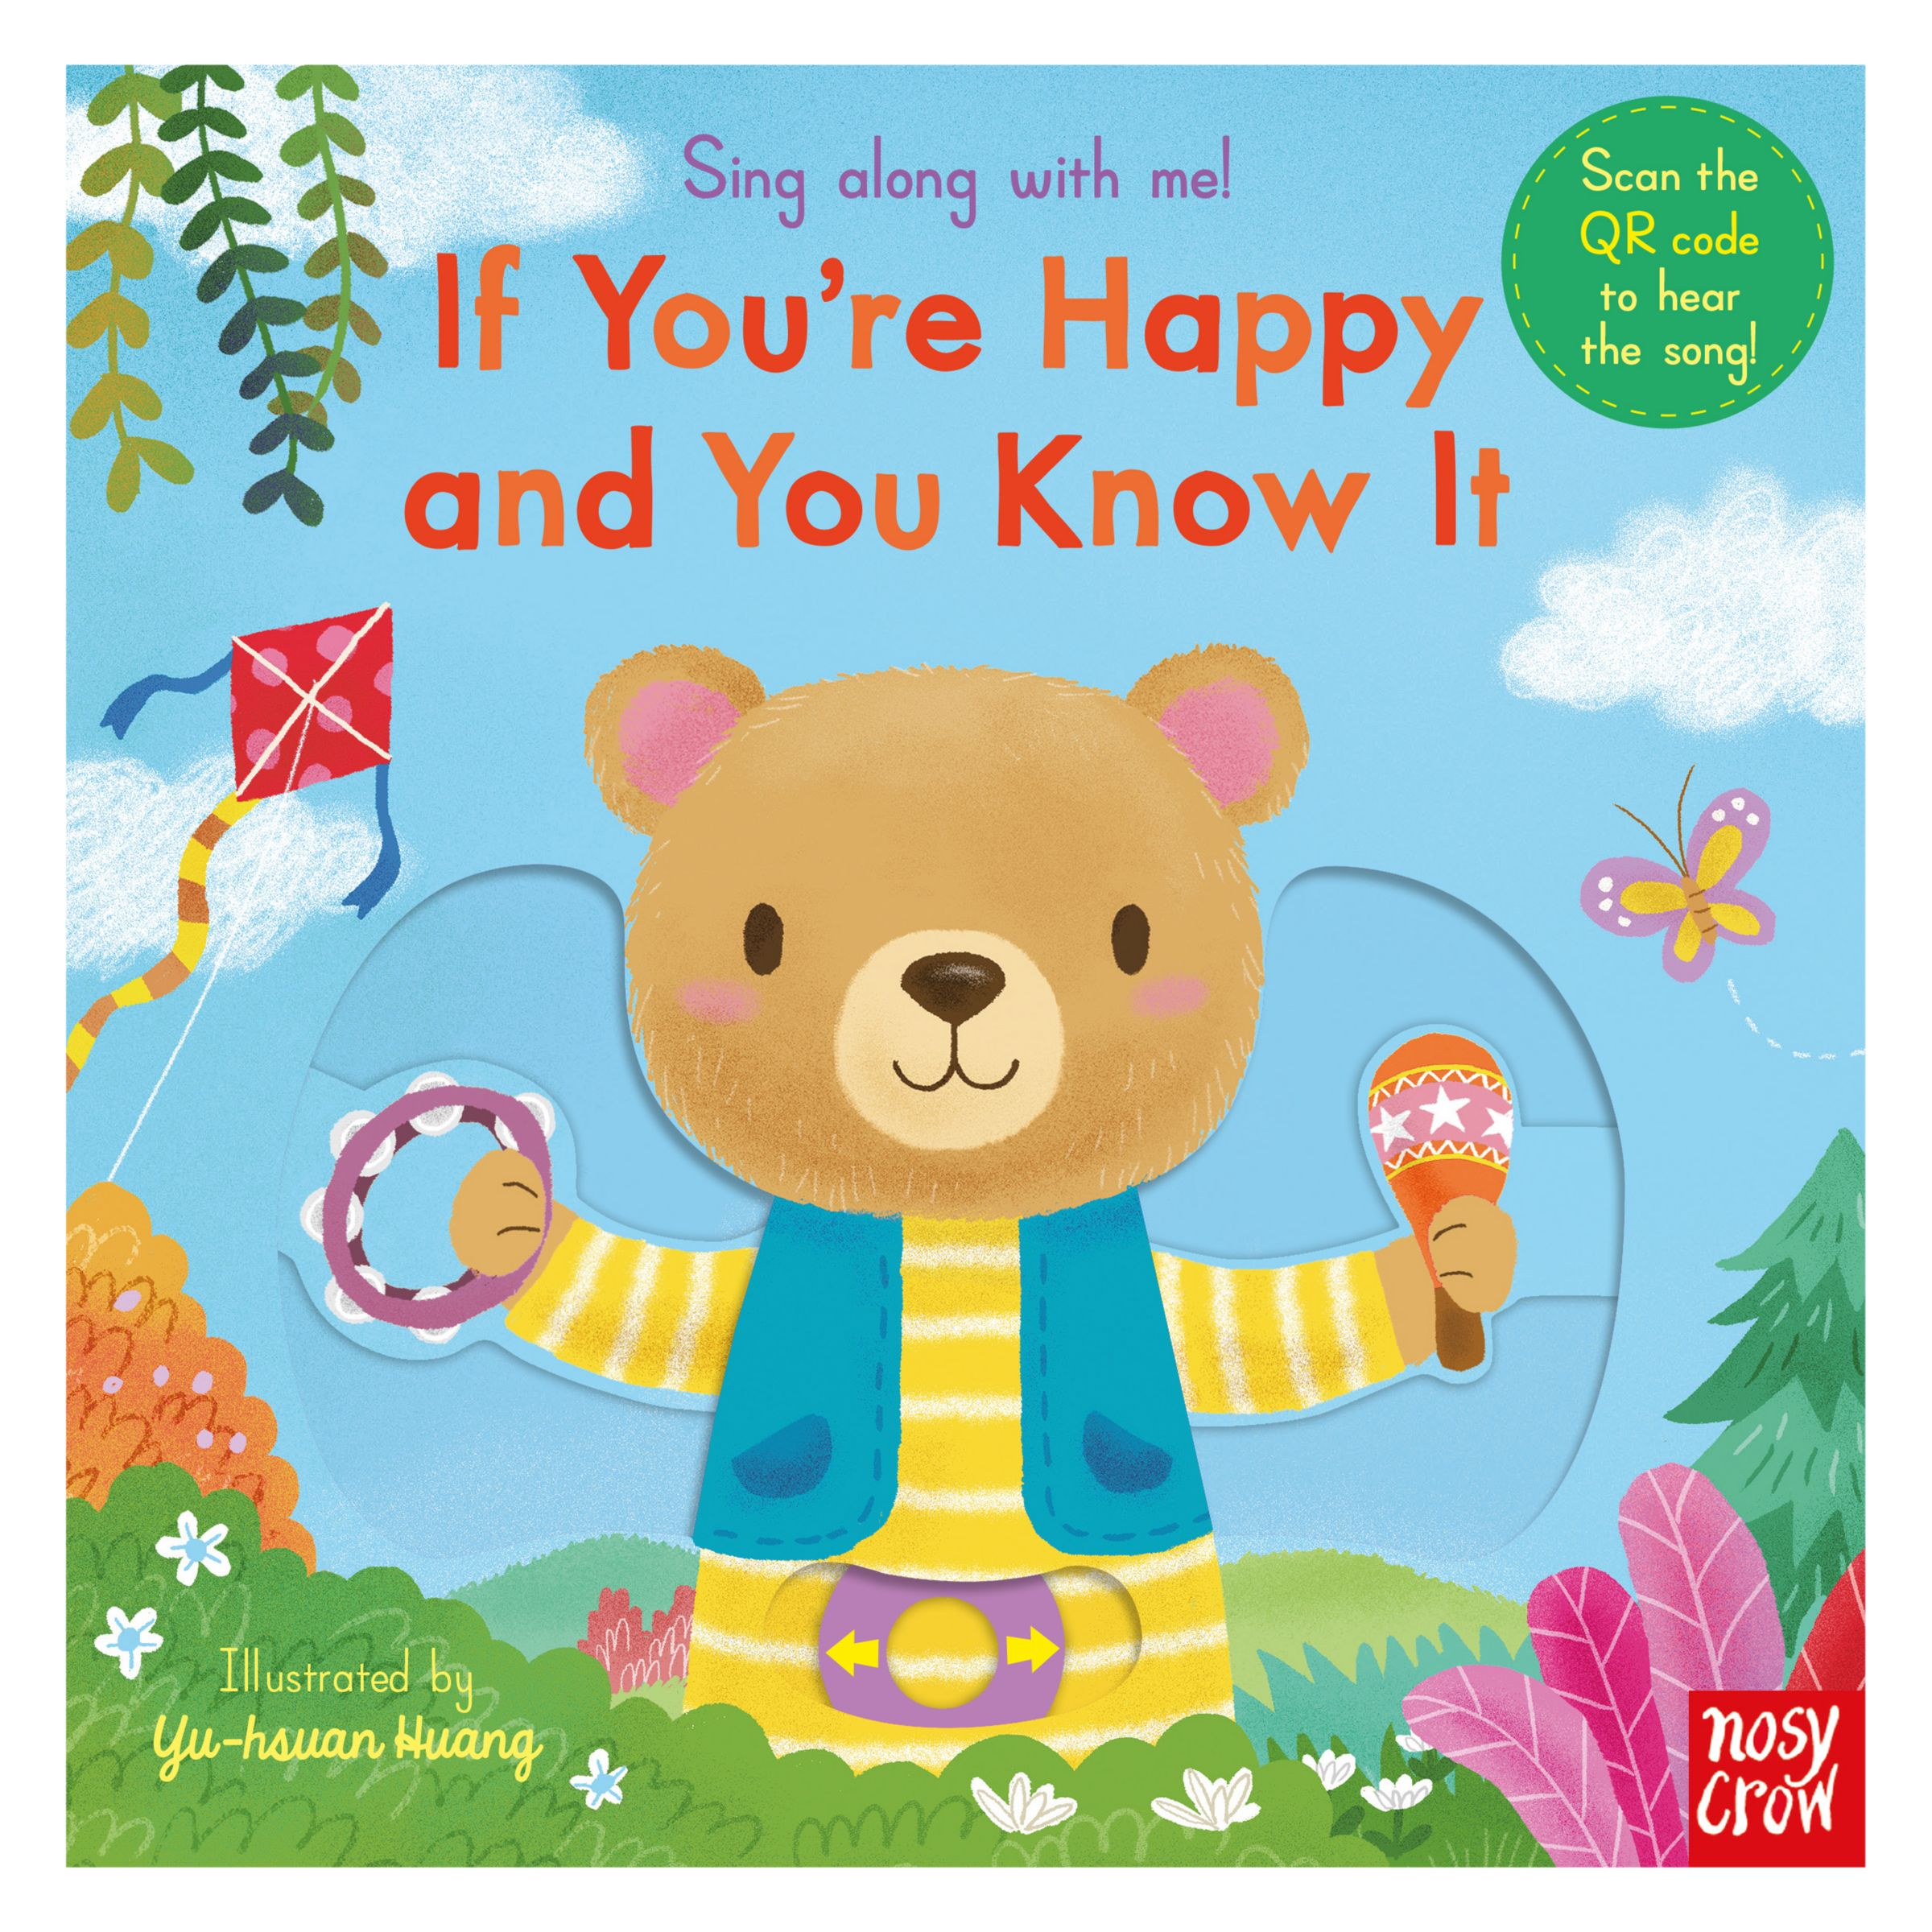 Nosy Crow Sing Along With Me! If You're Happy and You Know It!